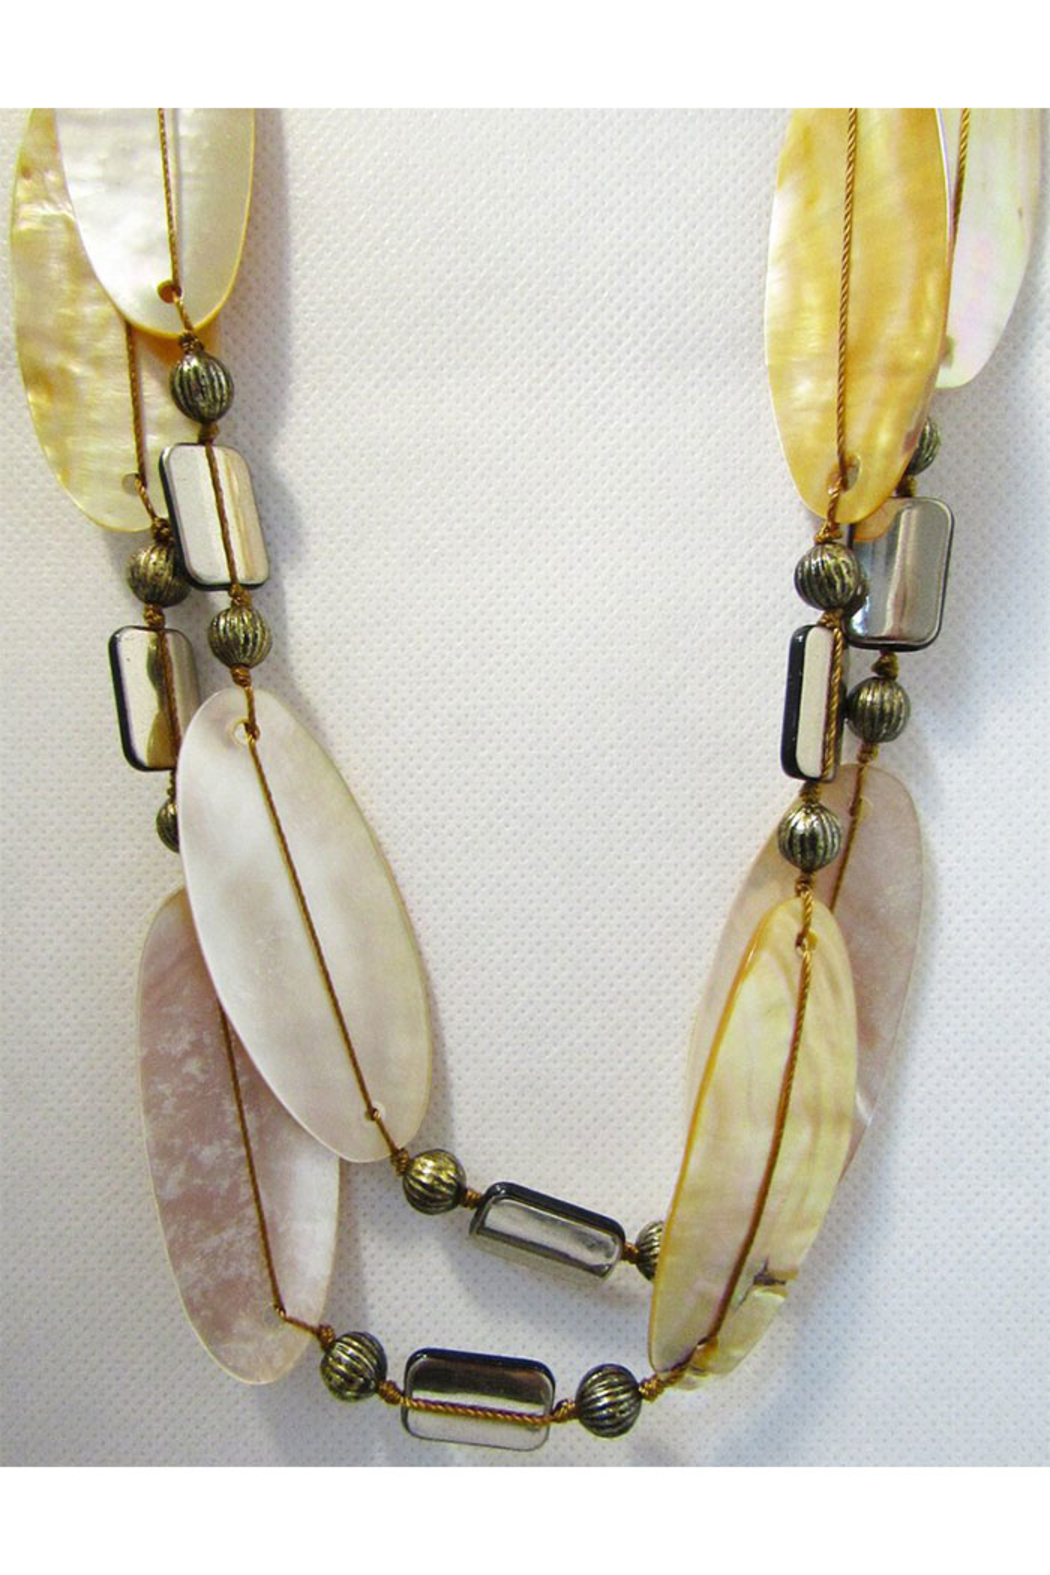 Int'l Duru Mother Of Pearl Shells 2-Strand Necklace - Main Image